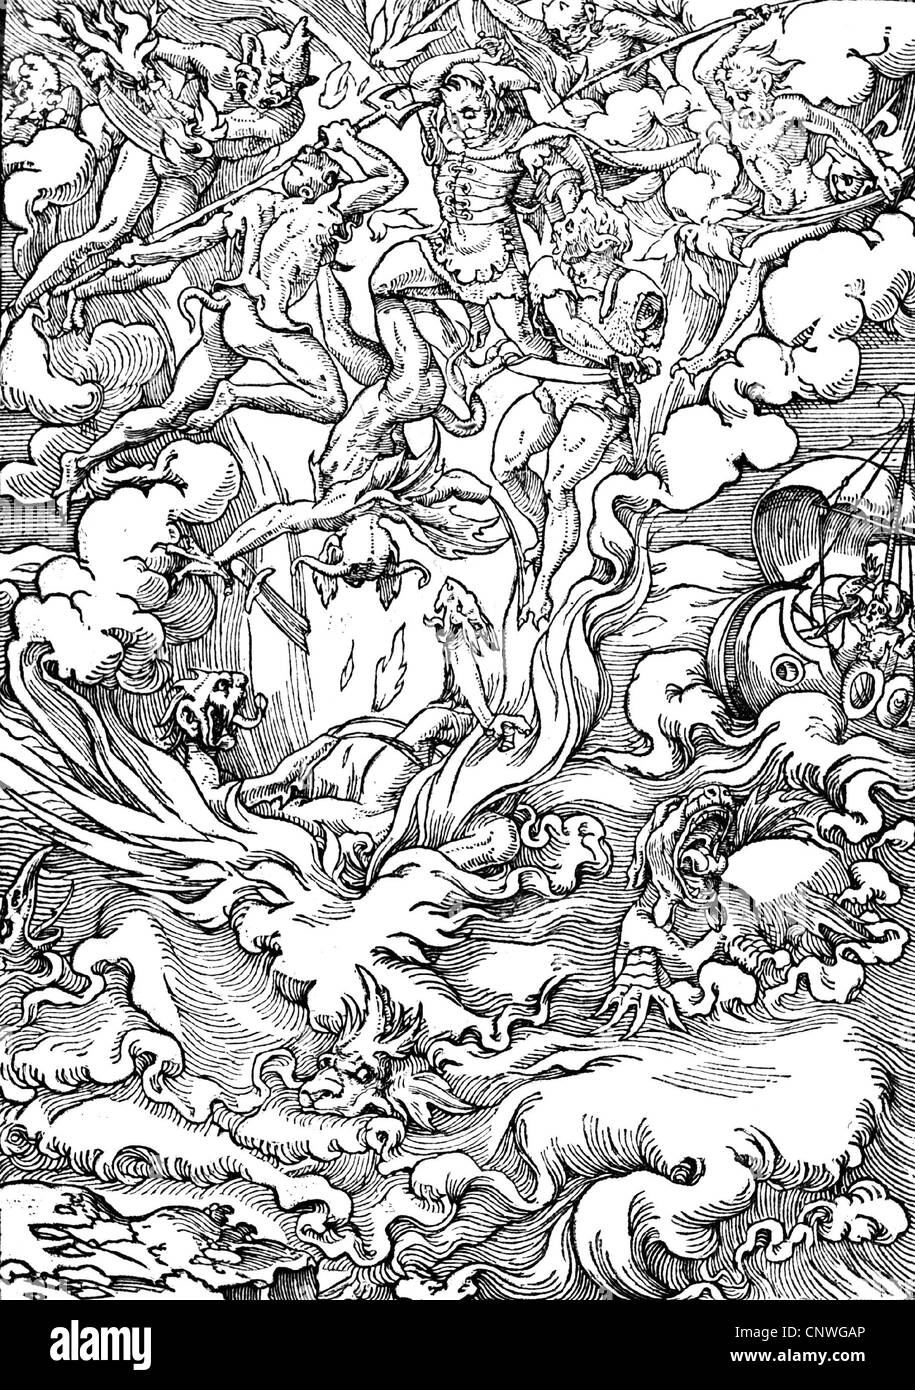 religion, apocalypse, Last Judgement, woodcut by Jean Cousin, from the novel by Gerard d'Euphrate, Paris, 1549, Stock Photo